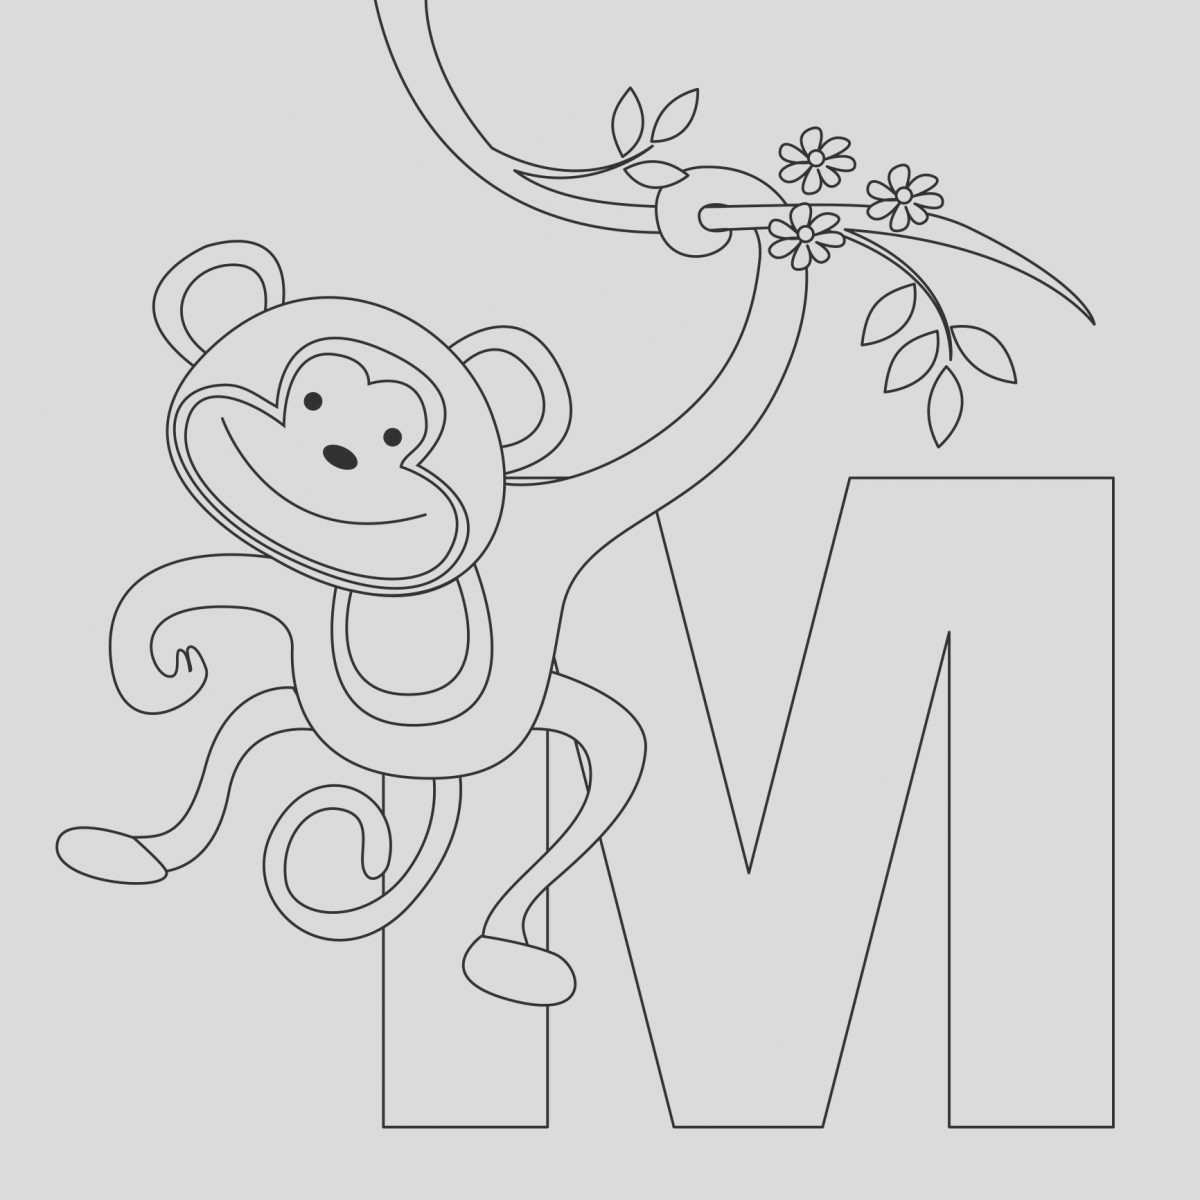 Alphebet Coloring Page Inspirational Free Printable Alphabet Coloring Pages for Kids Best